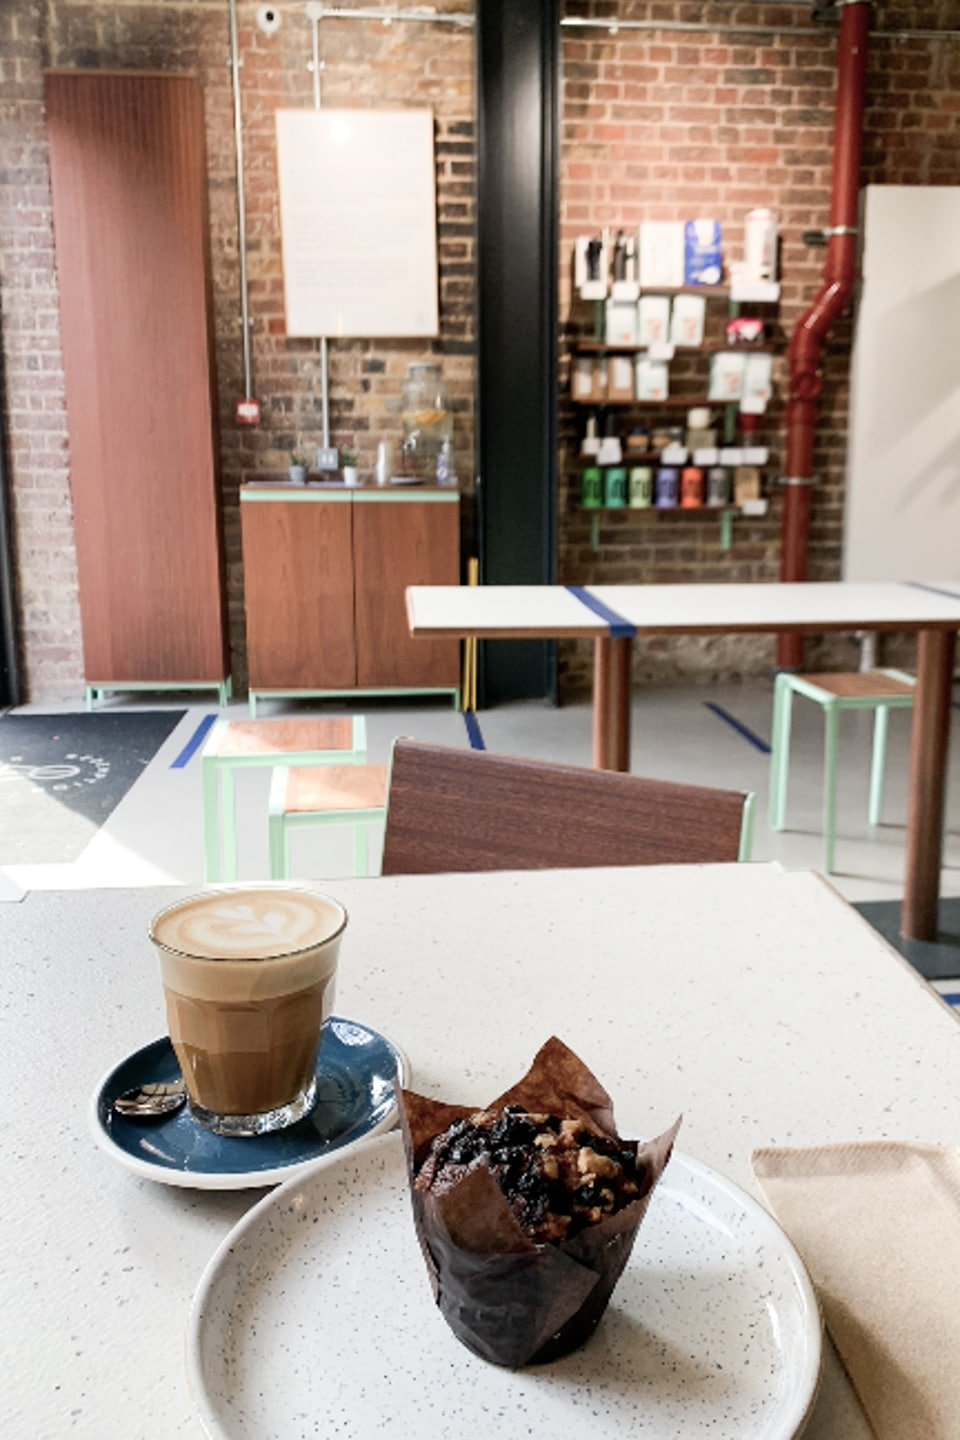 Breakfast muffin and coffee on table at Redemption Roasters